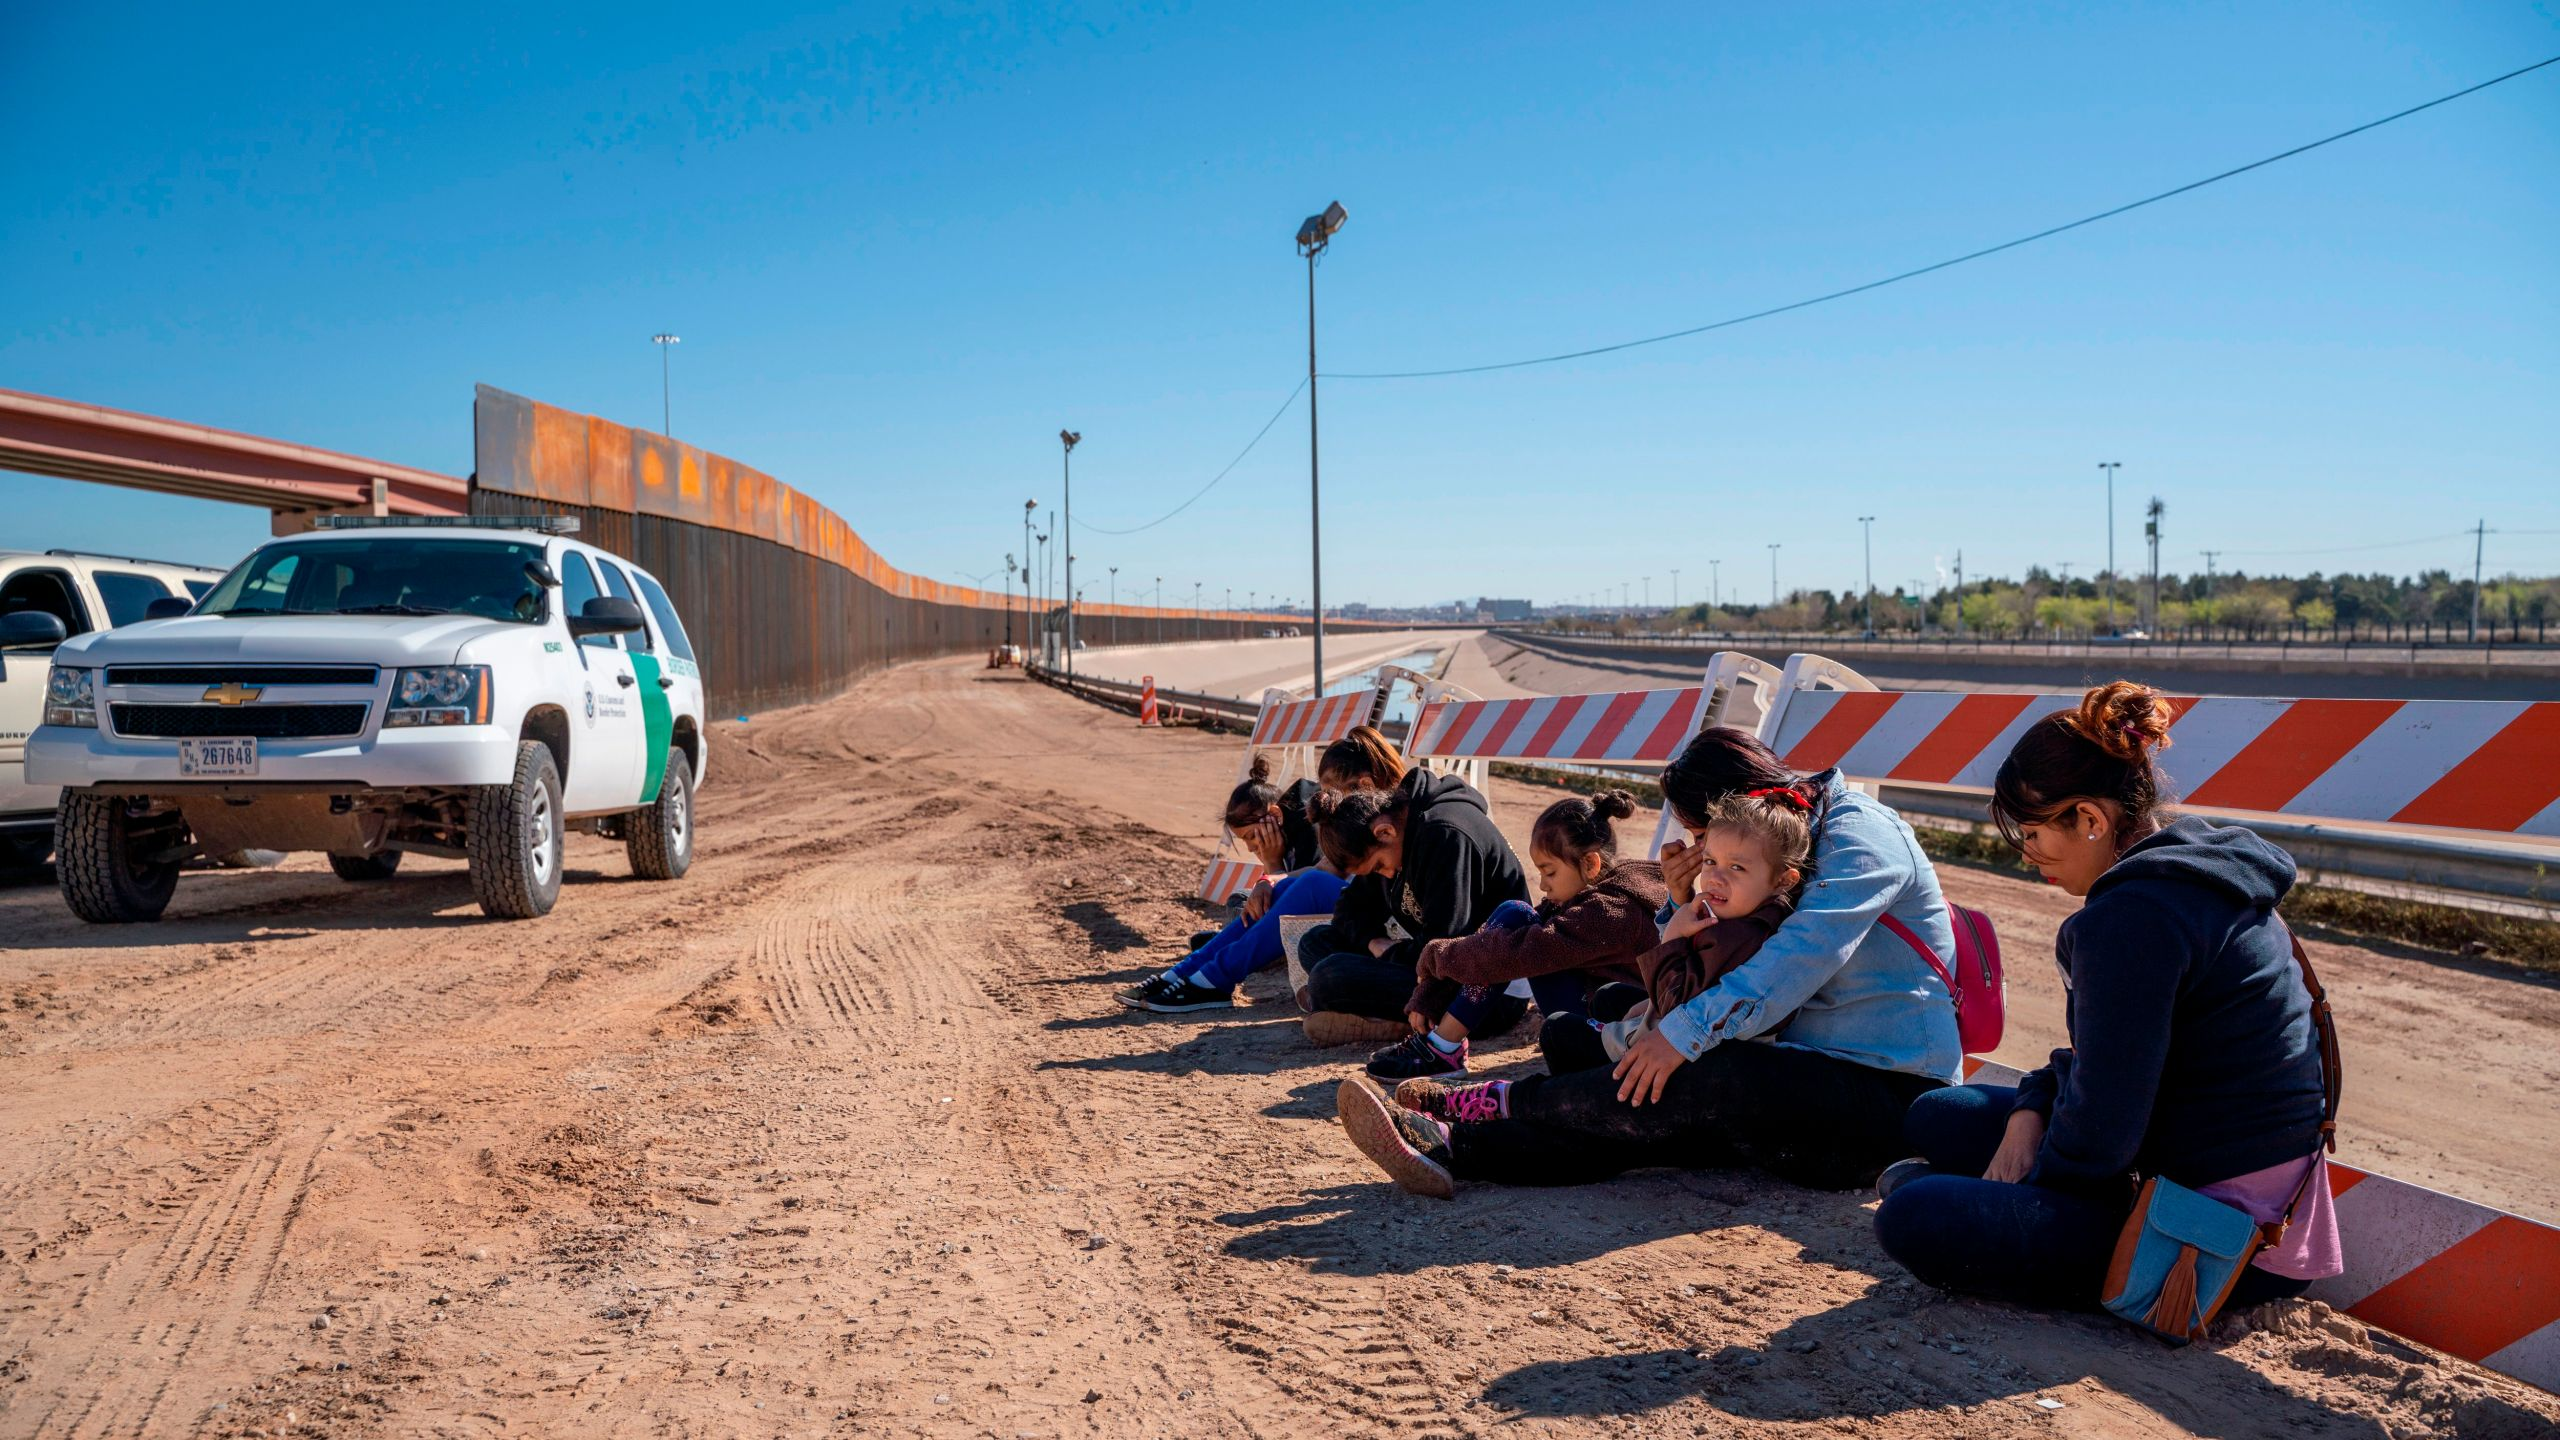 Salvadoran migrants wait for a transport to arrive after turning themselves into U.S. Border Patrol by border fence under construction in El Paso, Texas, on March 19, 2019. (Credit: Paul Ratje / AFP / Getty Images)